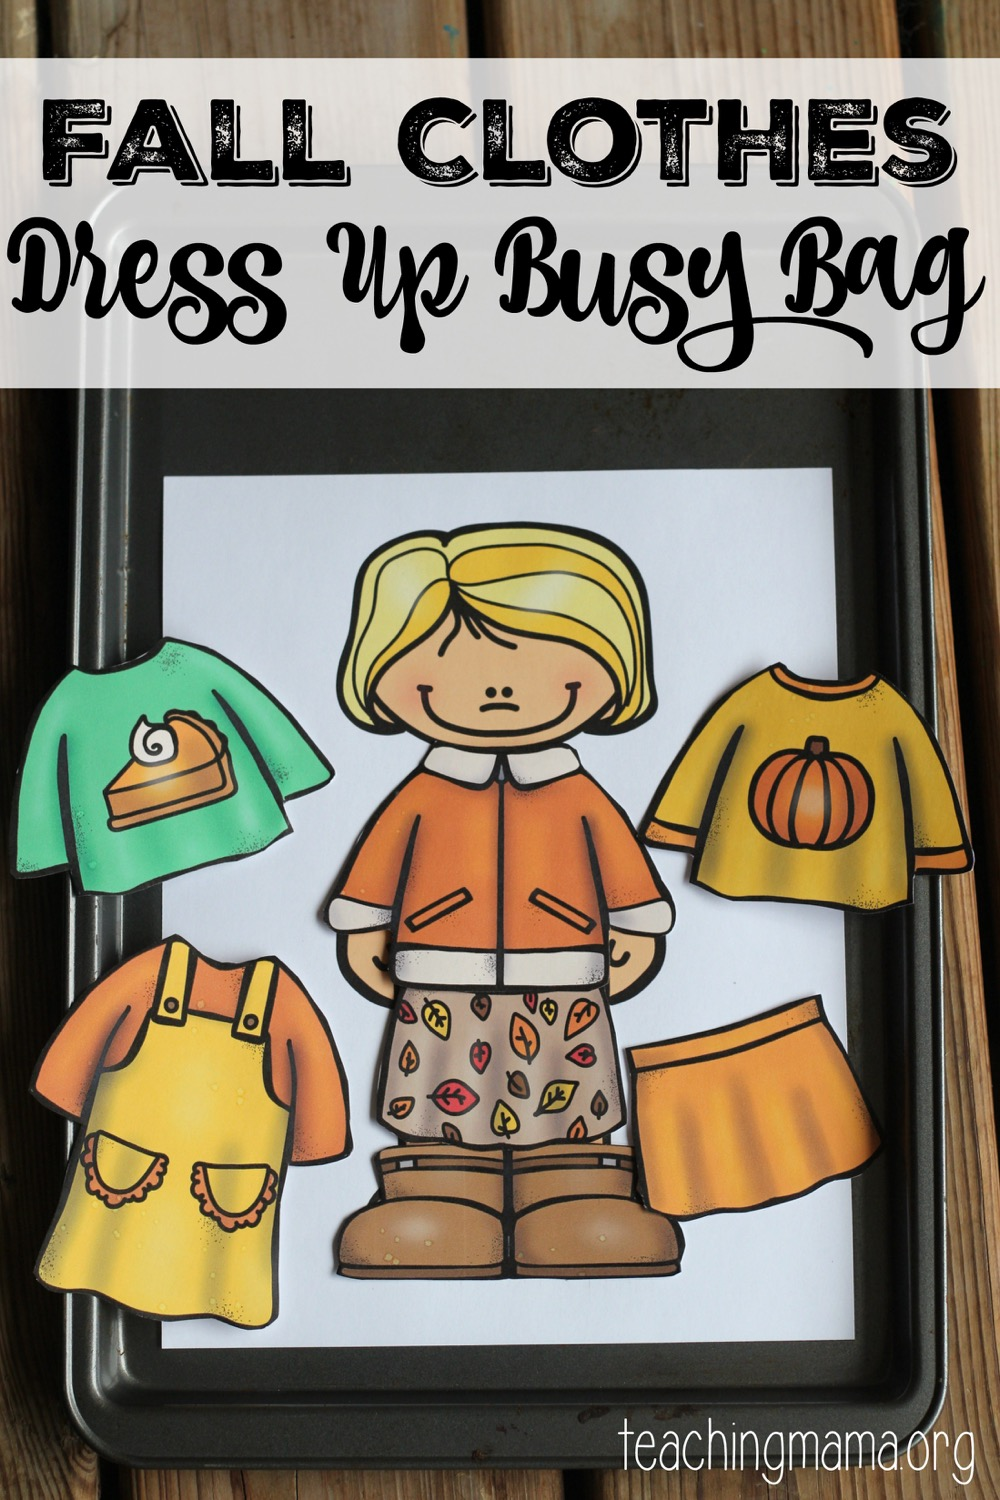 Fall Clothes Dress Up Busy Bag on winter clothes dress up busy bag free printable